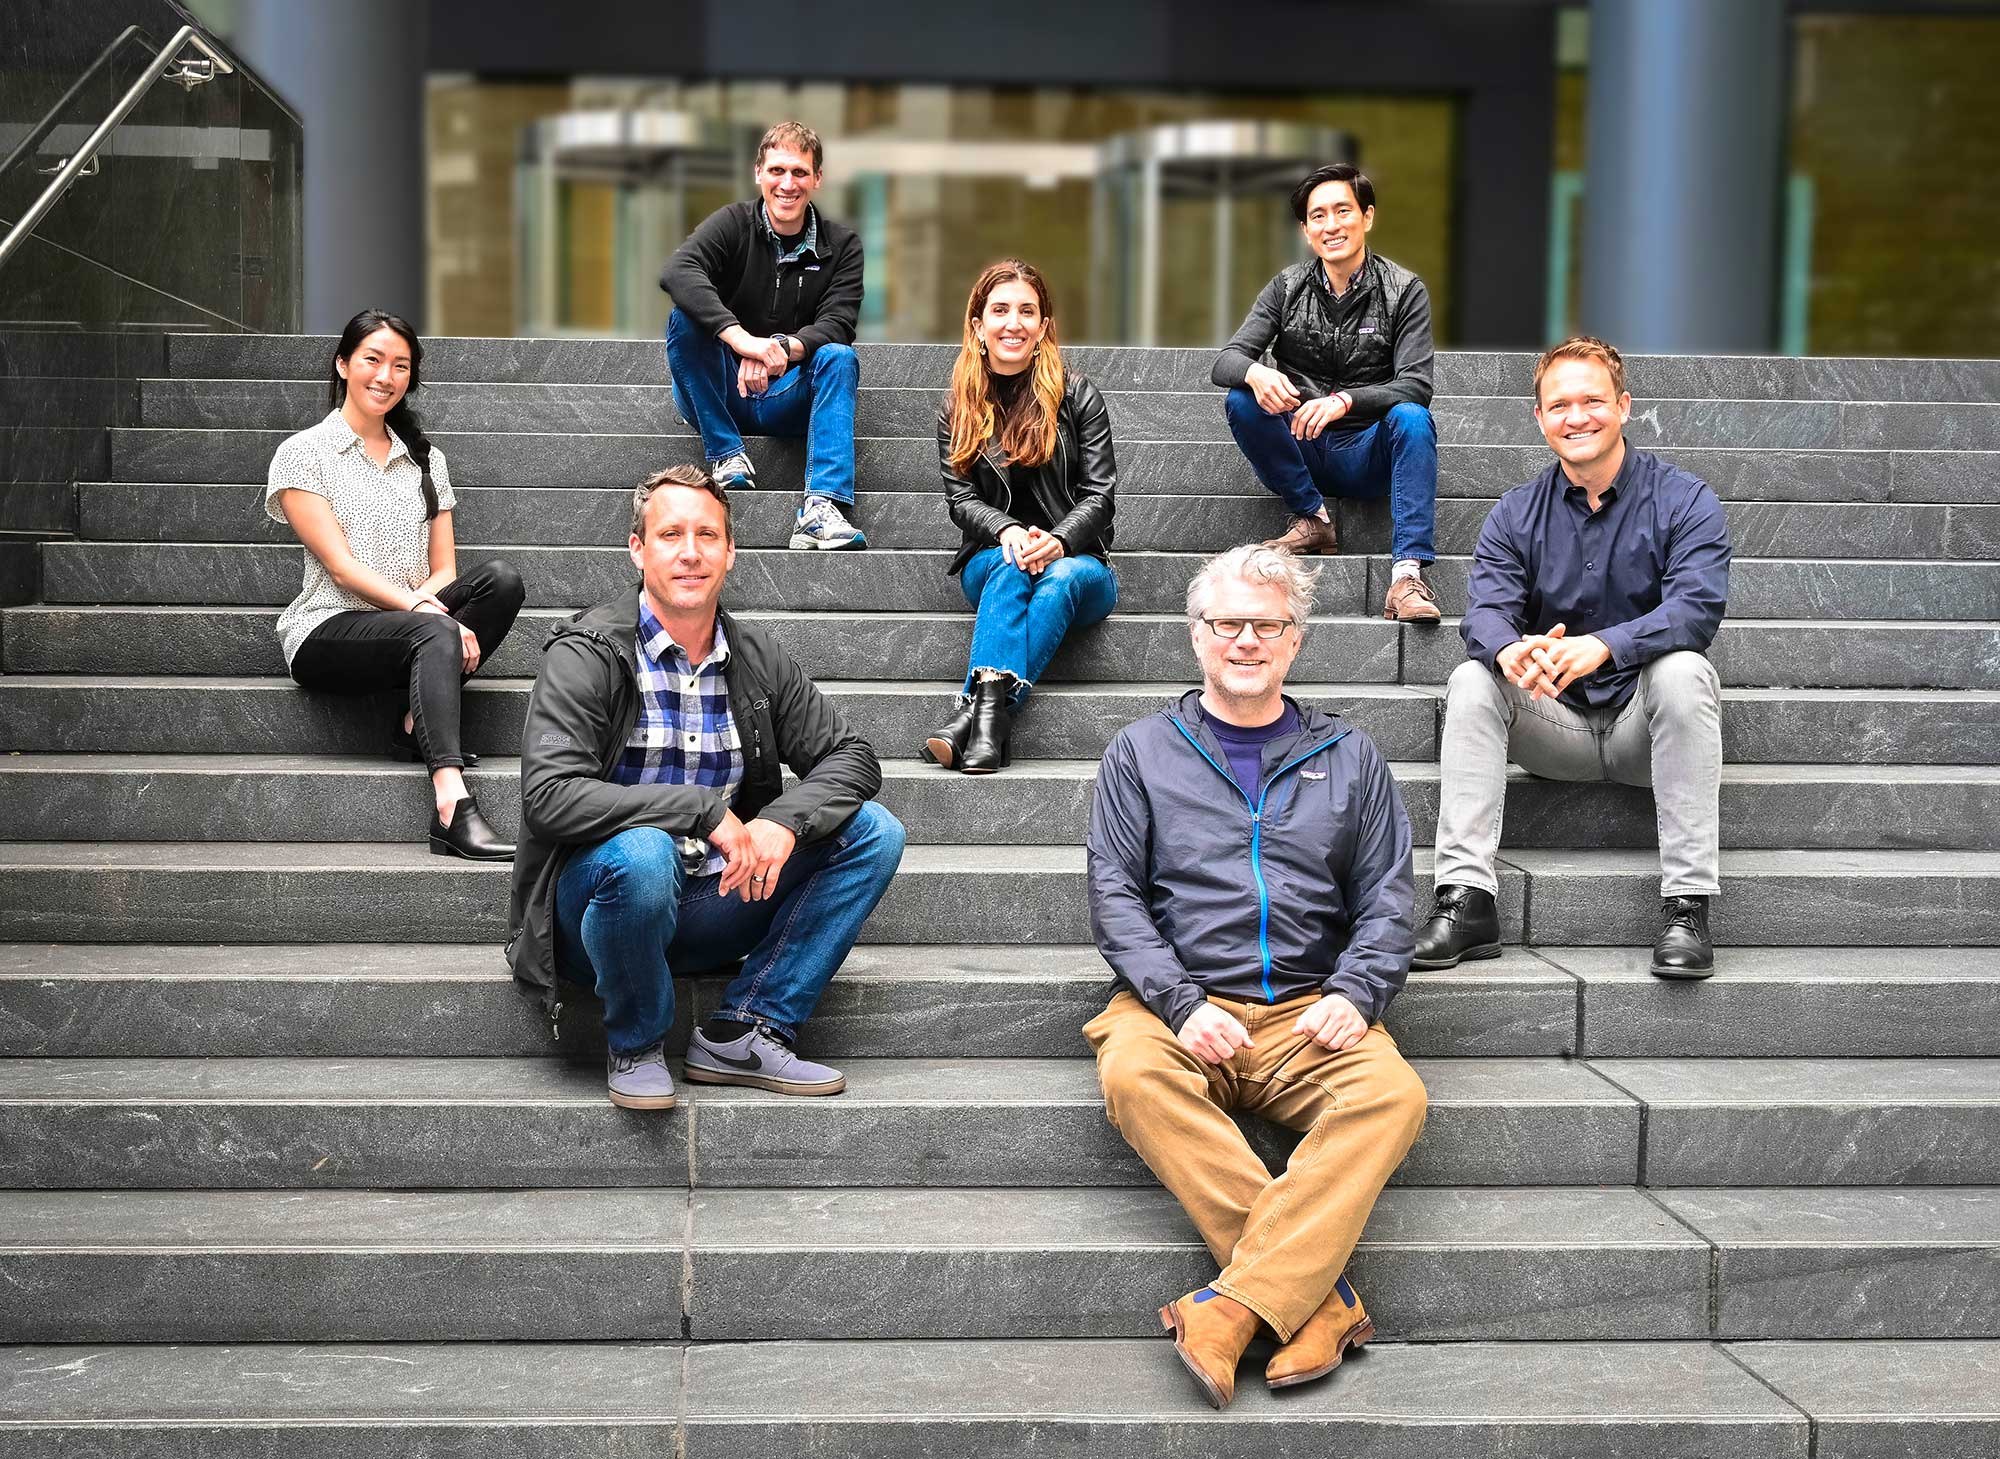 Madrona Venture Labs raises $8M, unveils plan to turn its investors into co-founders of spinouts